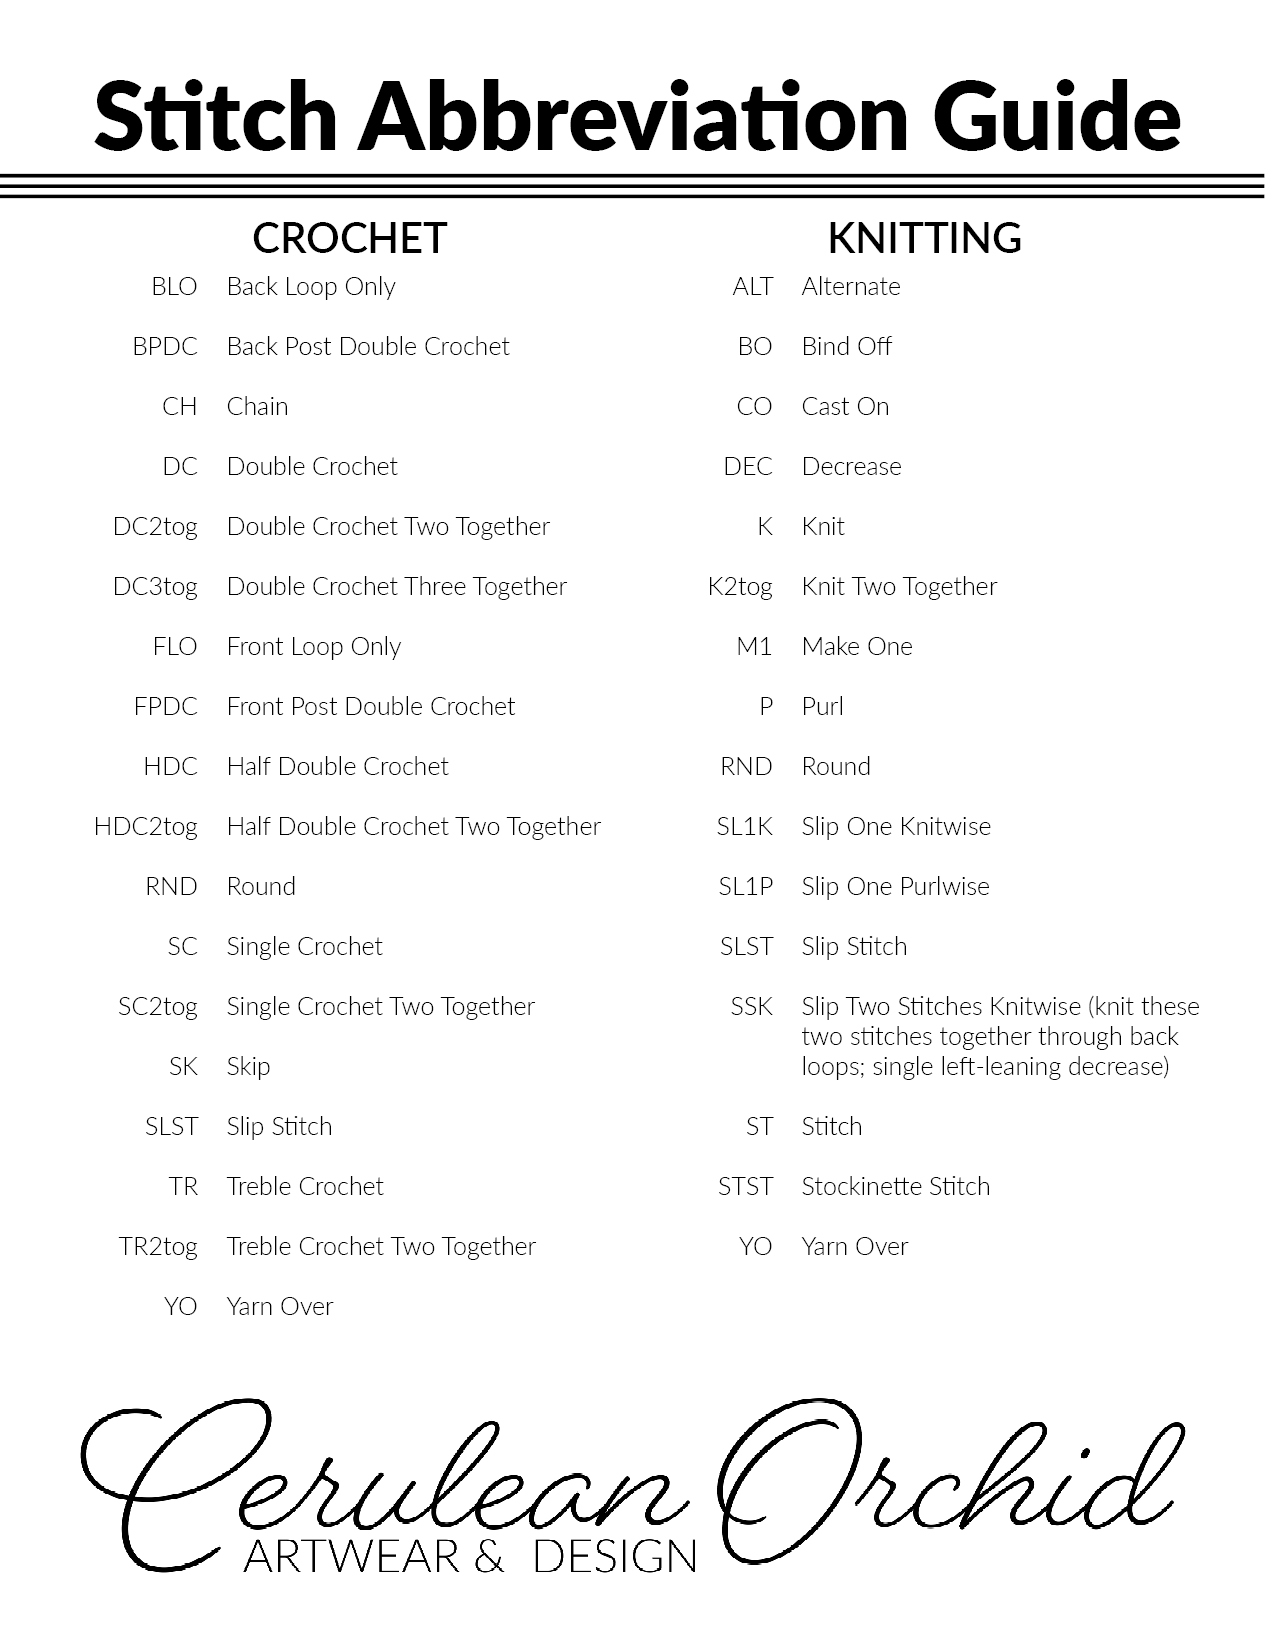 Cerulean Orchid Stitch Abbreviation Guide - We've created a quick reference sheet for the stitch abbreviations we most commonly use in our crochet and knitting patterns. You can download a copy by clicking the button below.